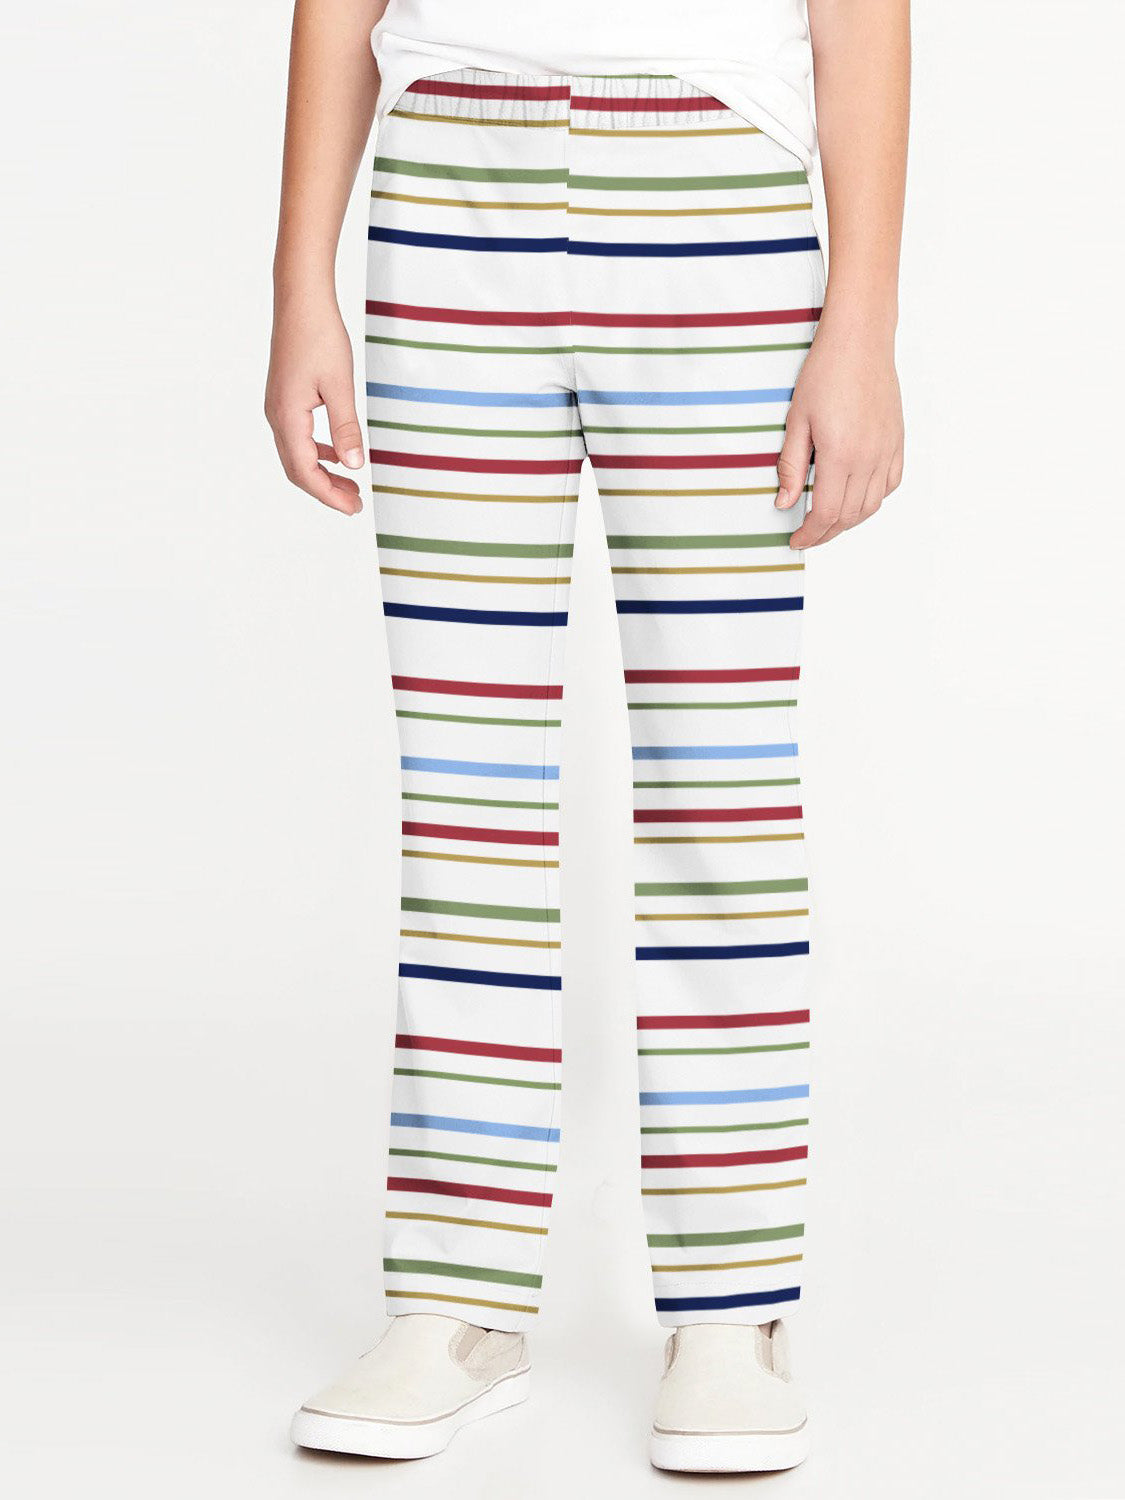 Zara Boy Slim Fit Flannel Trouser For Kids-White with Multi Stripe-BE9850